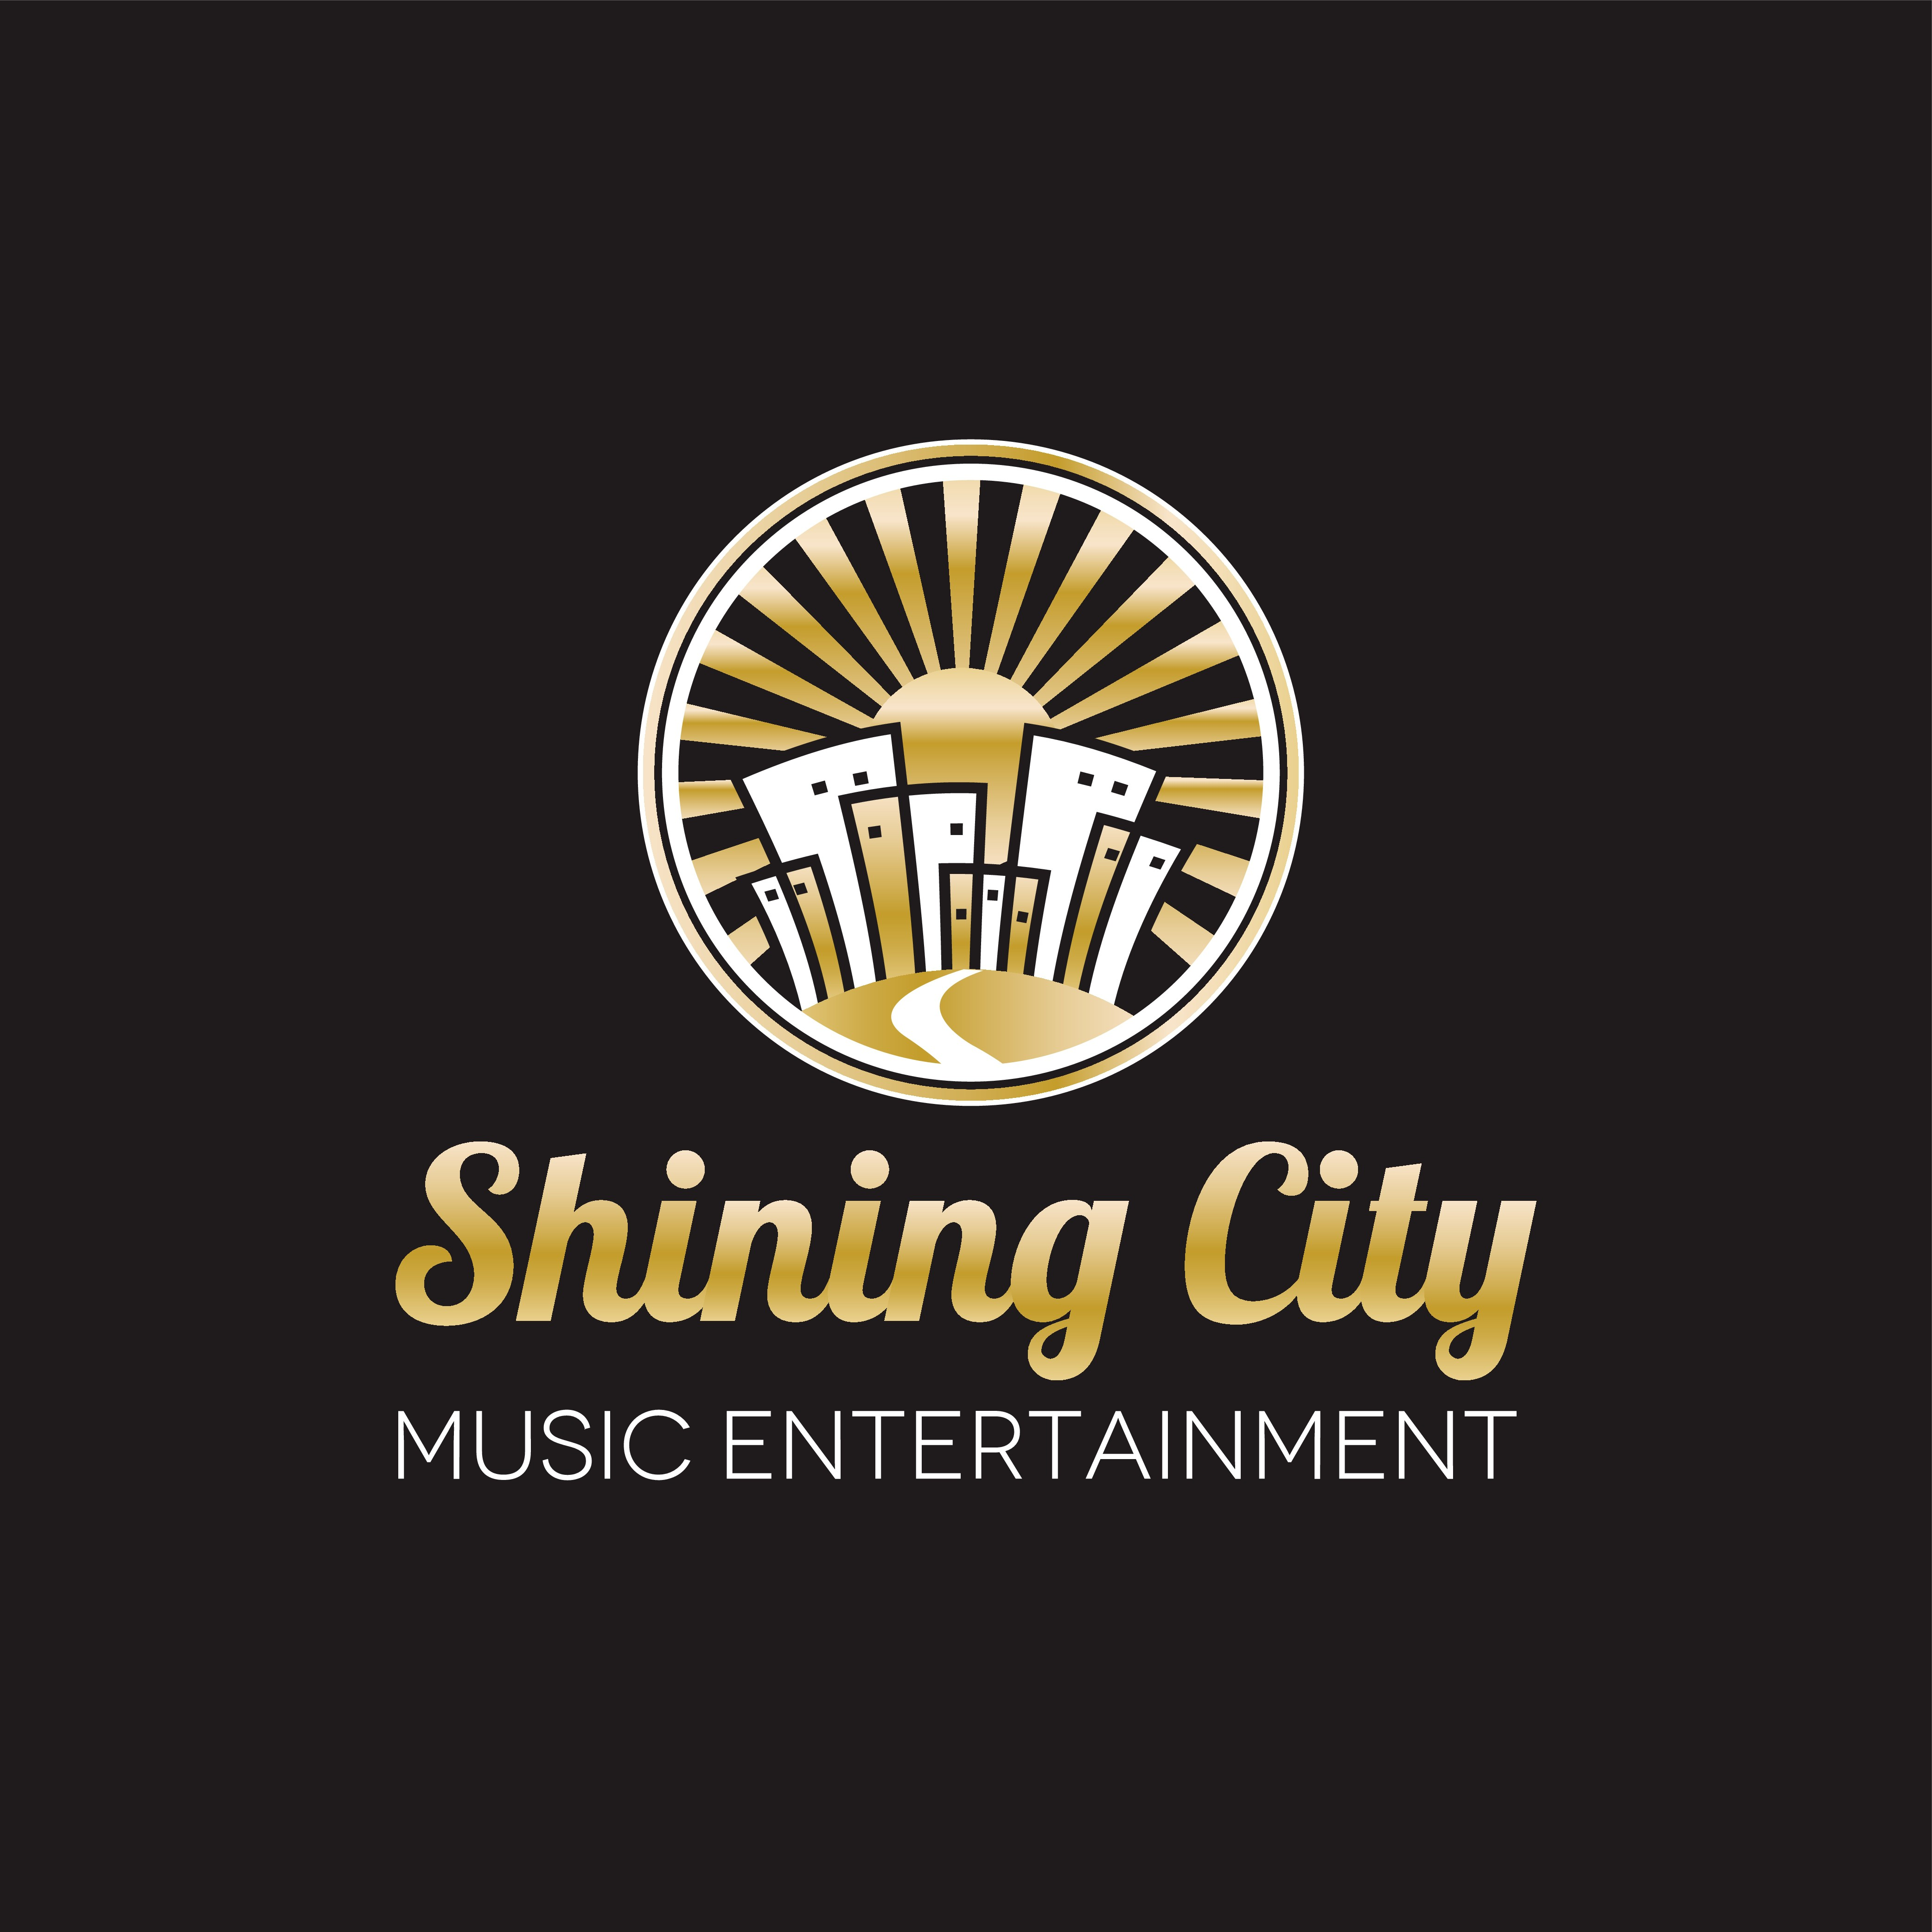 I would like a platinum record as the base with city on a hill with lights uplighting the sides.